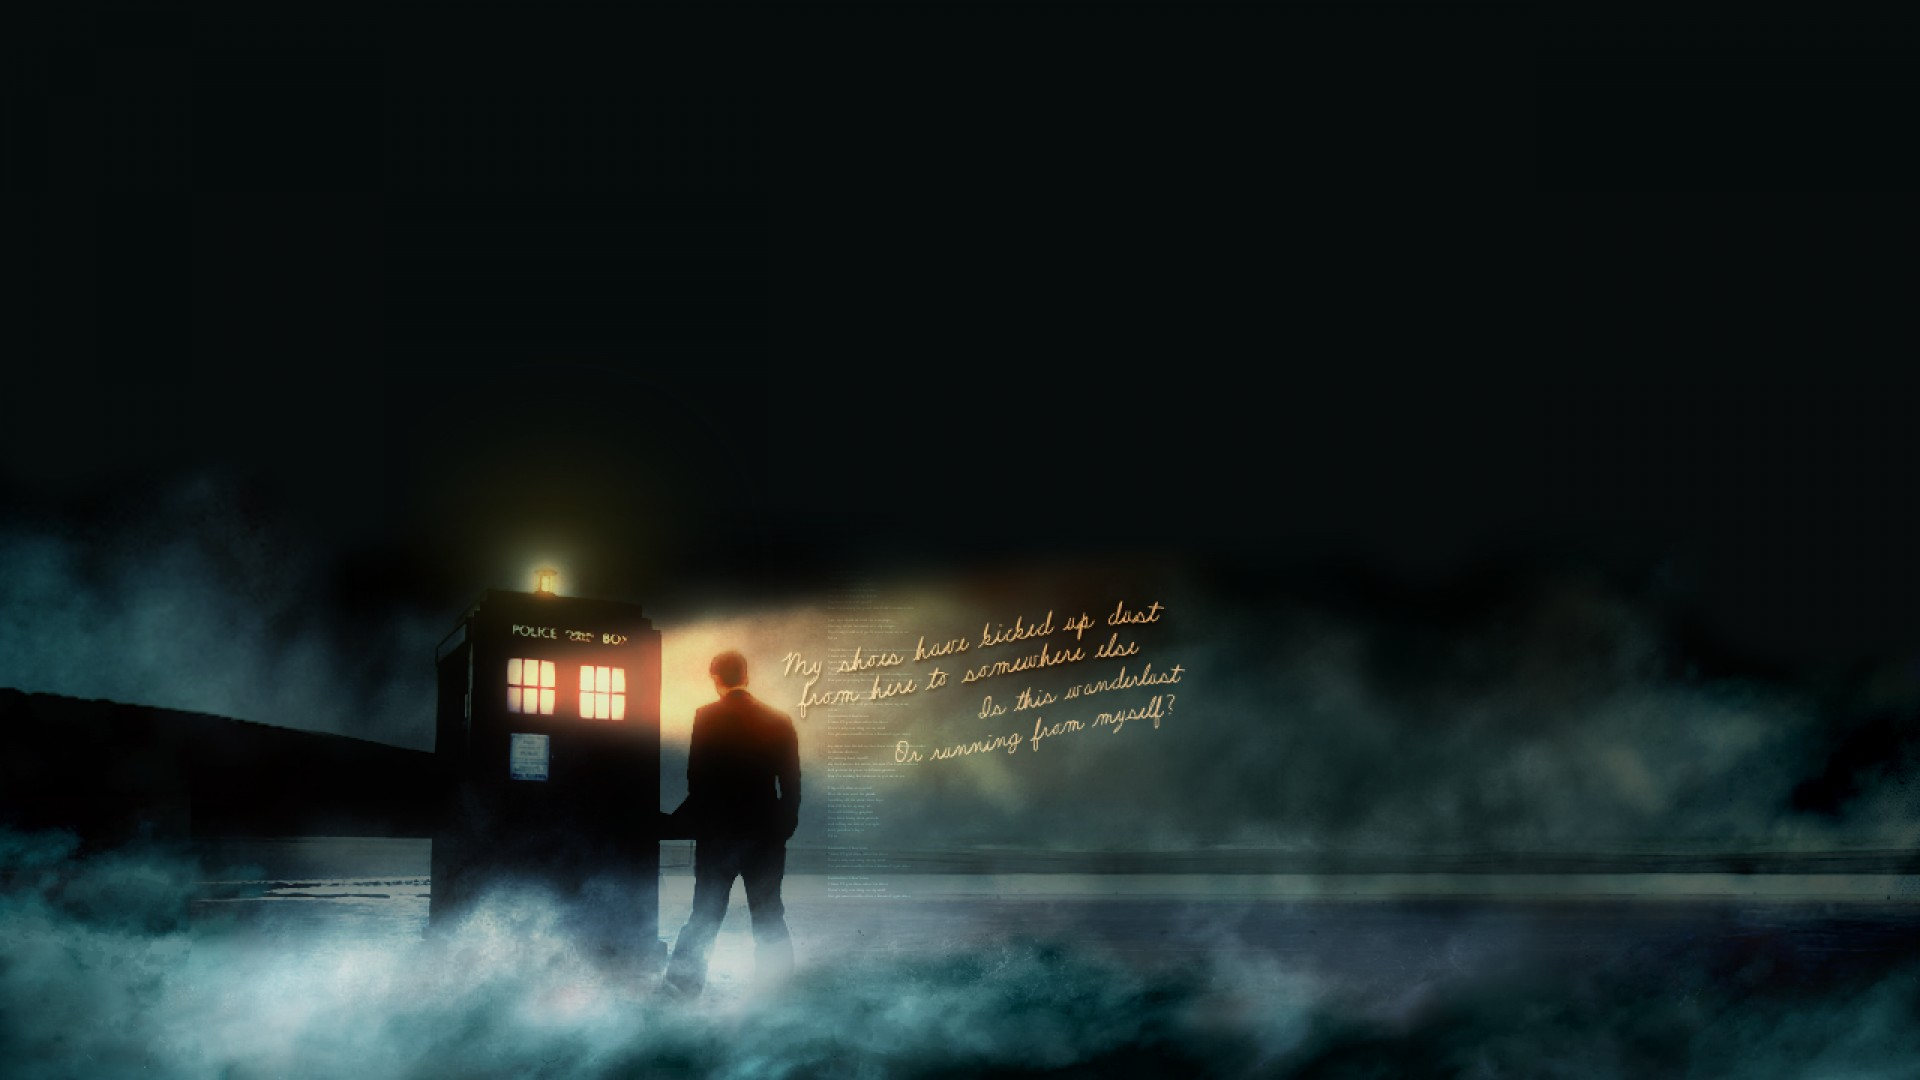 Doctor Who Hd Wallpaper 1920x1080 Posted By Ethan Walker